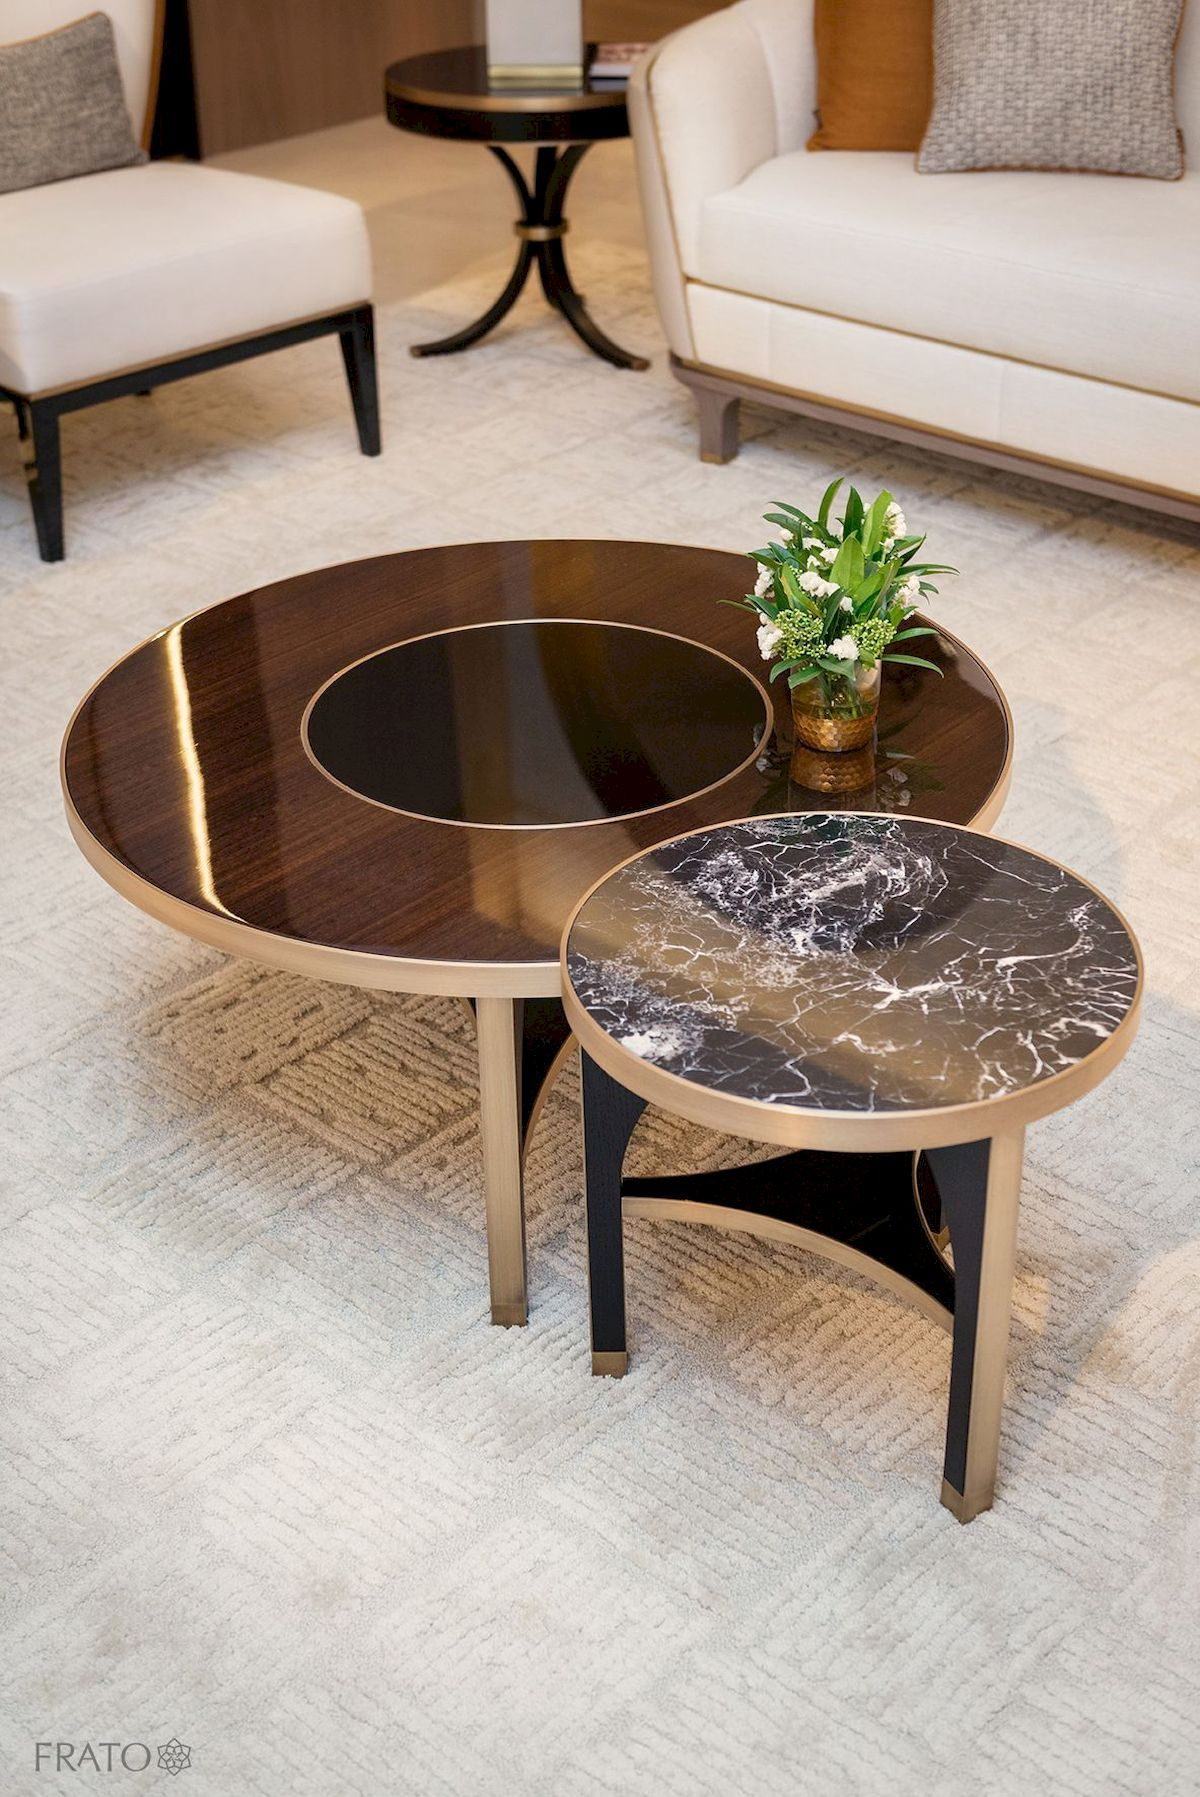 Cool Nesting Coffe Table For Add Style Your LivingRoom ...